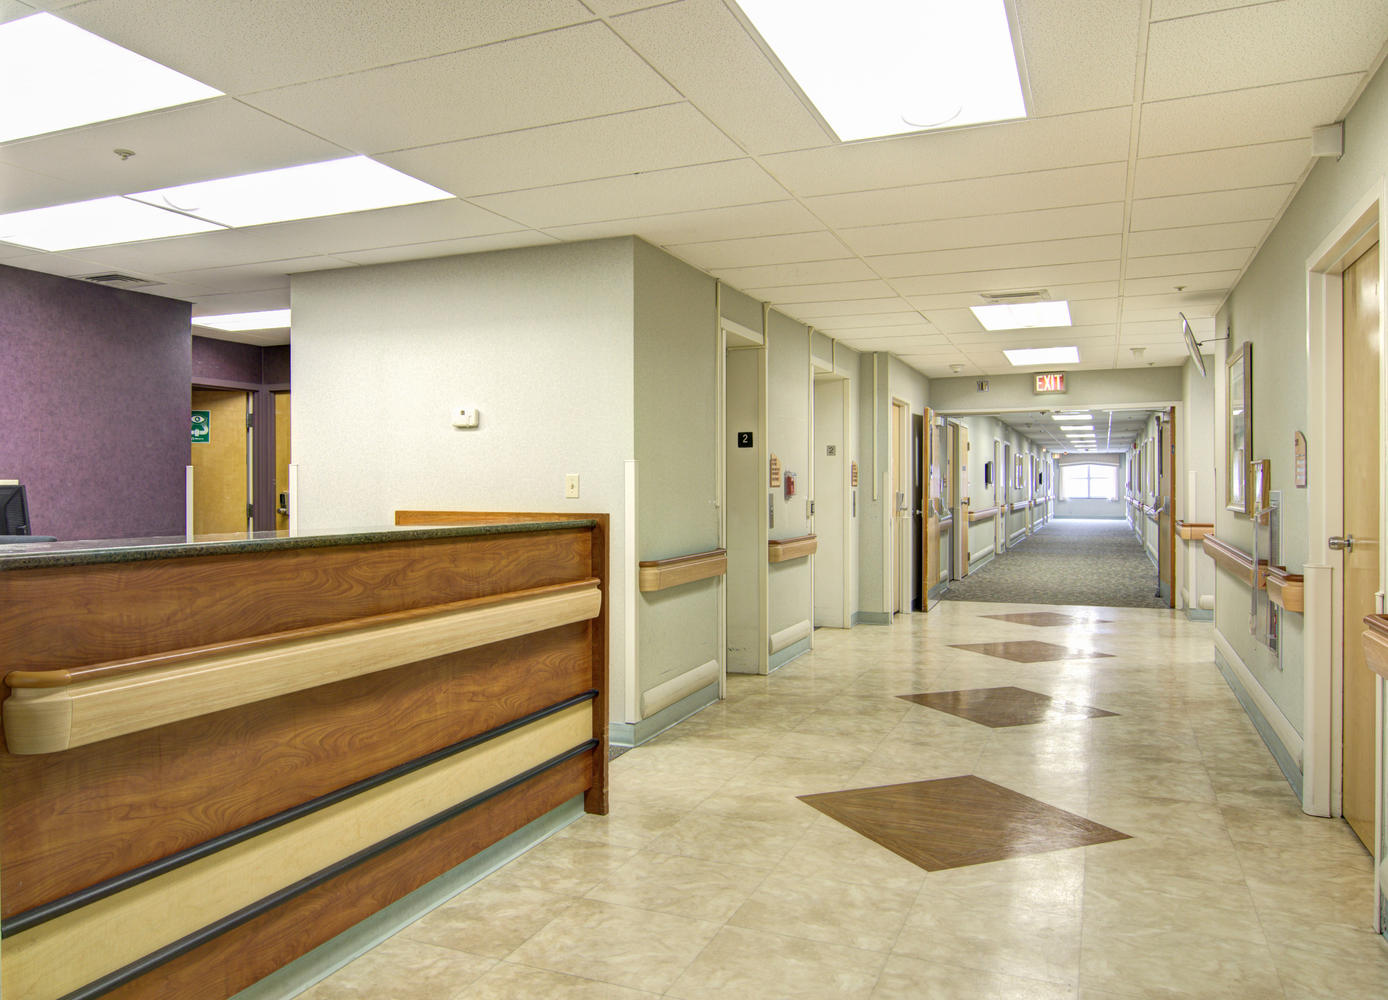 Manorcare Health Services Large 001 Hallway And Nurses Station 1388X1000 72Dpi